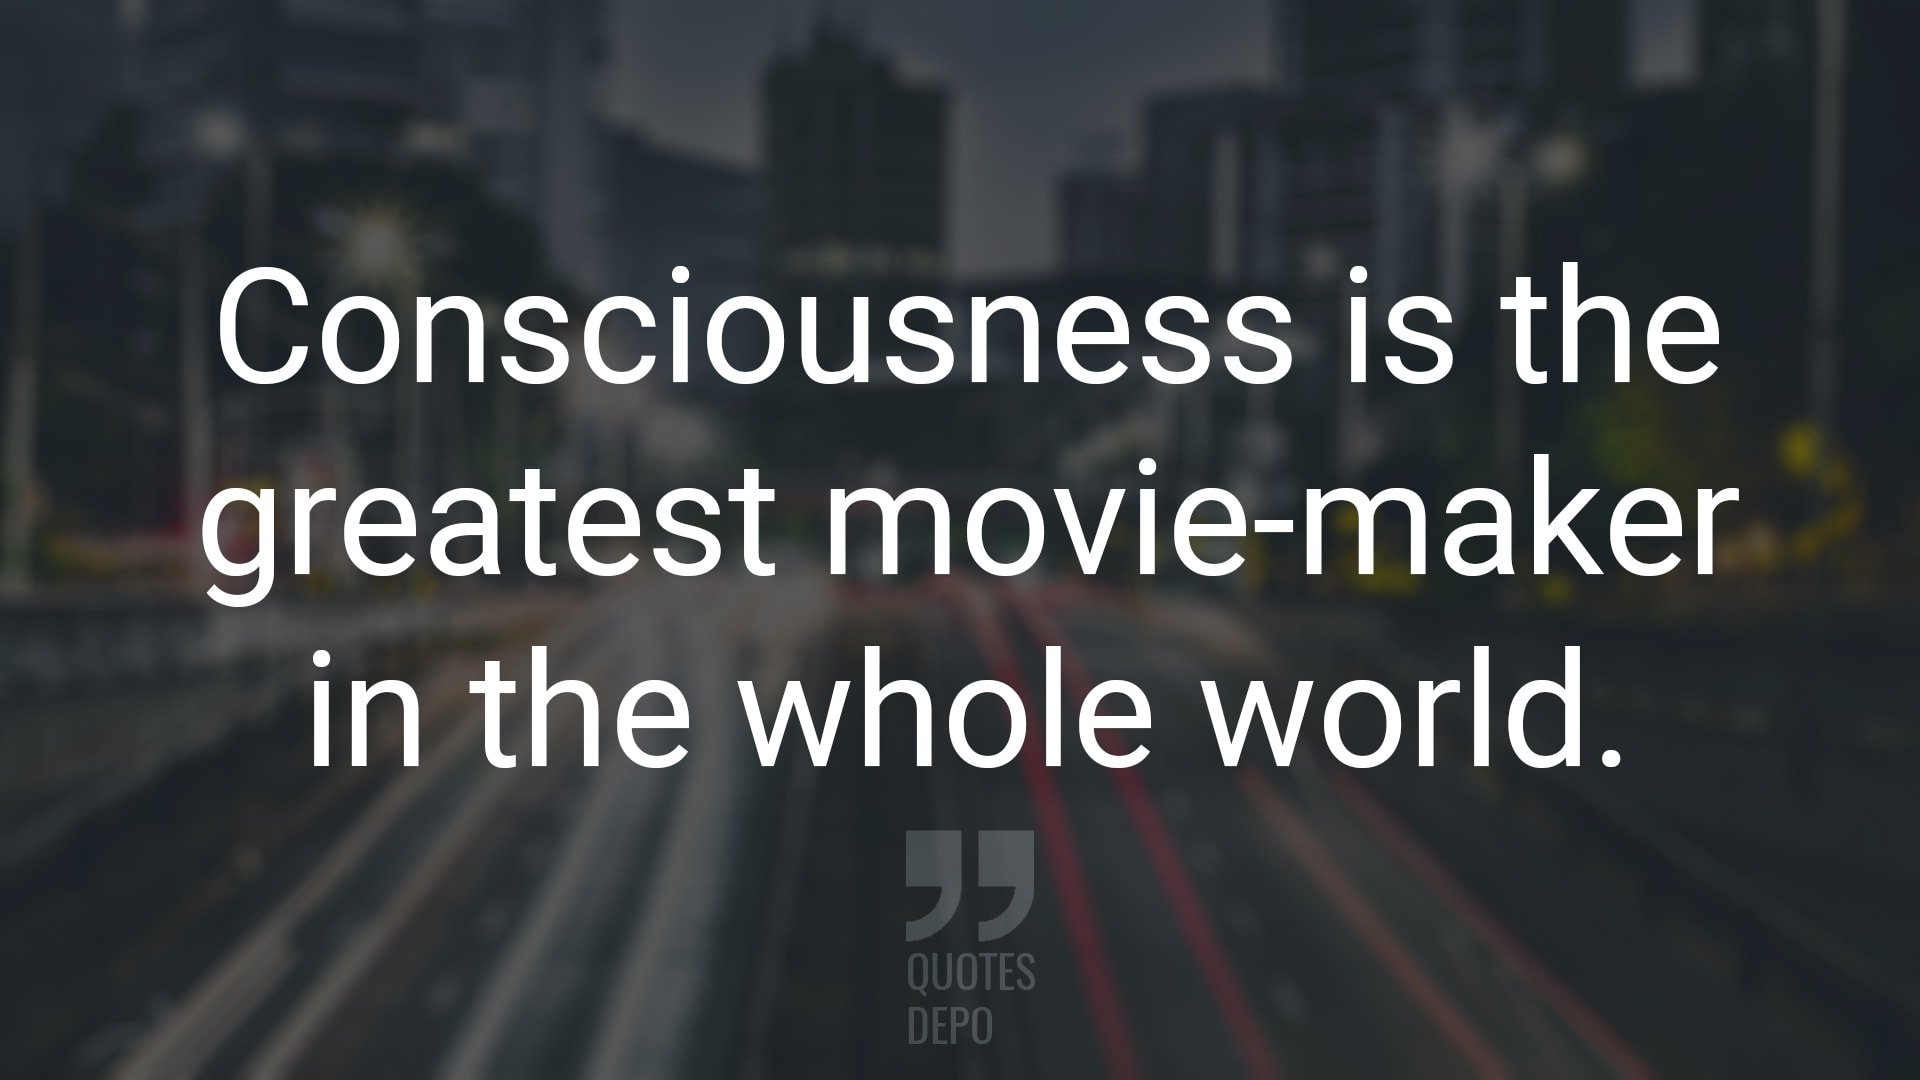 consciousness is the greatest movie-maker